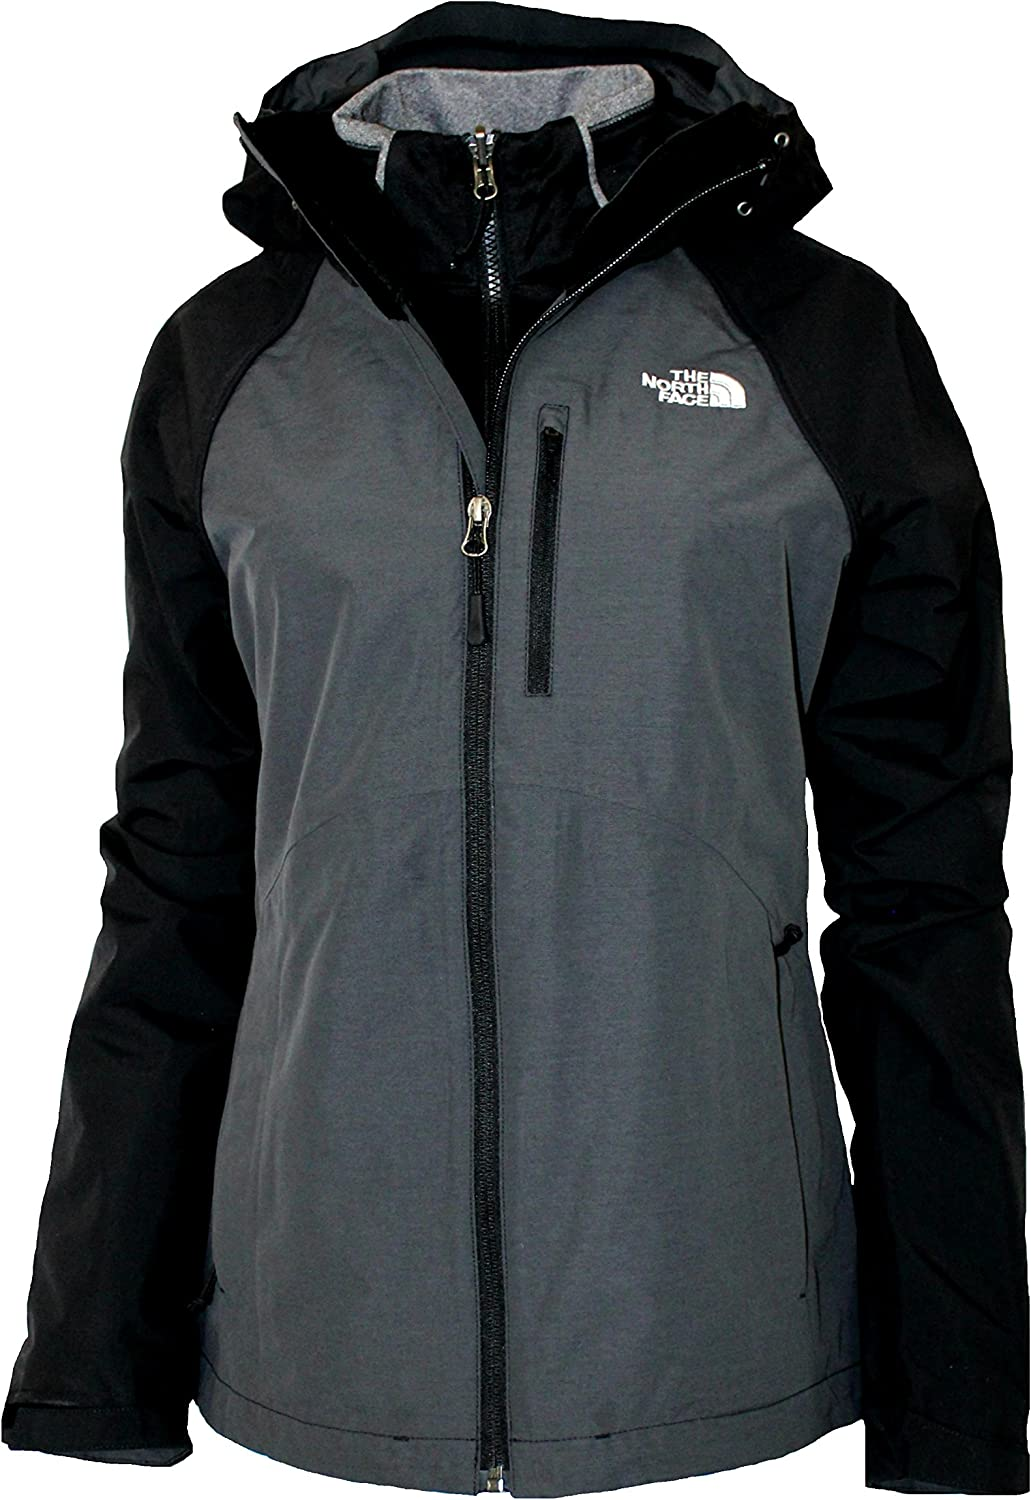 THE NORTH FACE Women's Cinder Triclimate 3 in 1 Ski Jacket TNF Black